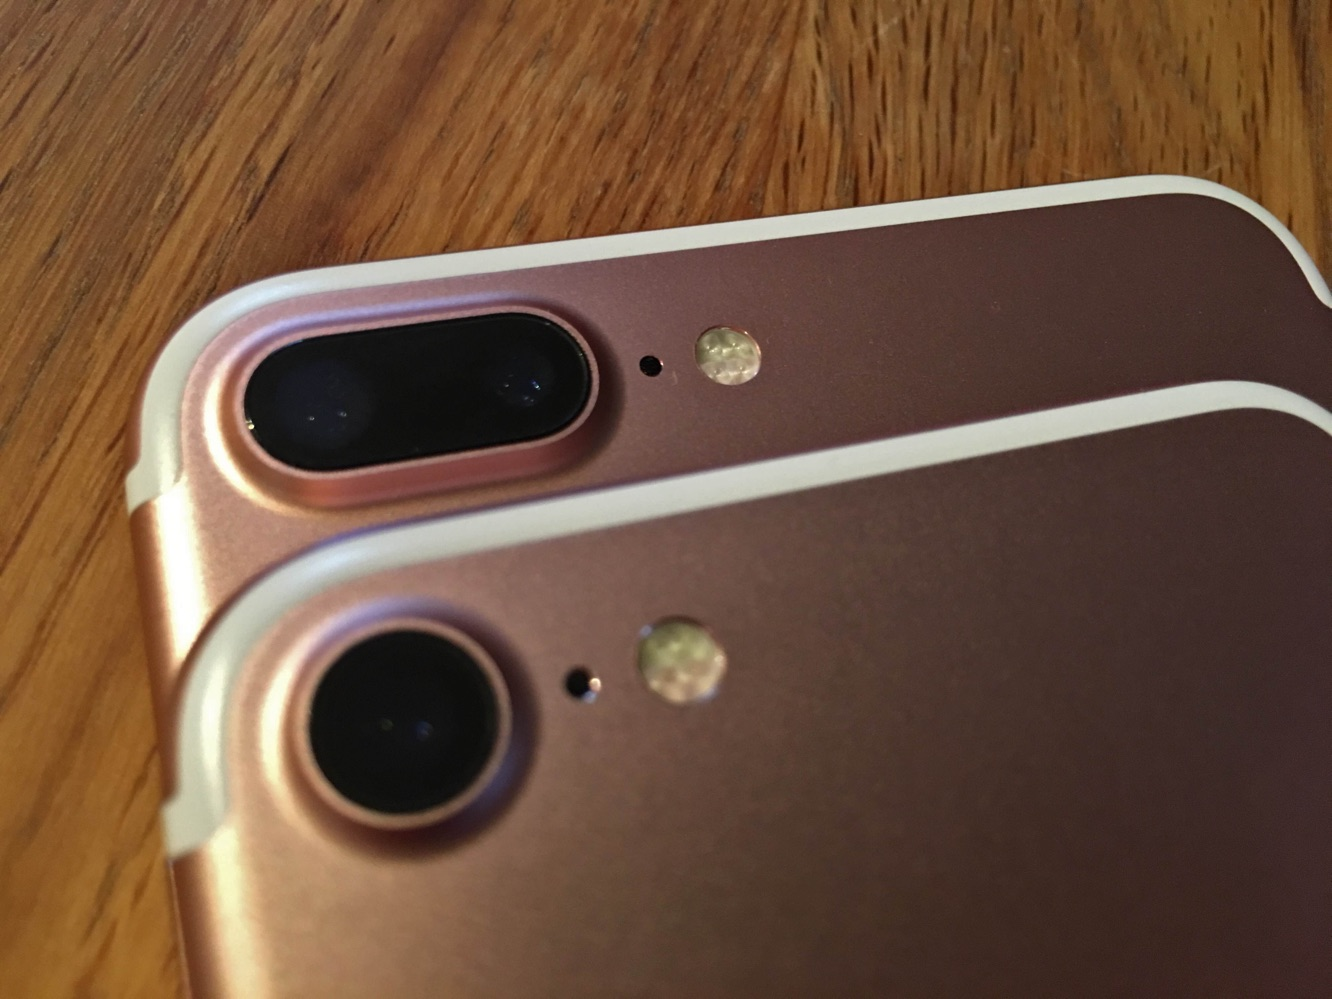 News: LG Innotek tagged to supply facial recognition camera modules for 'iPhone 8'